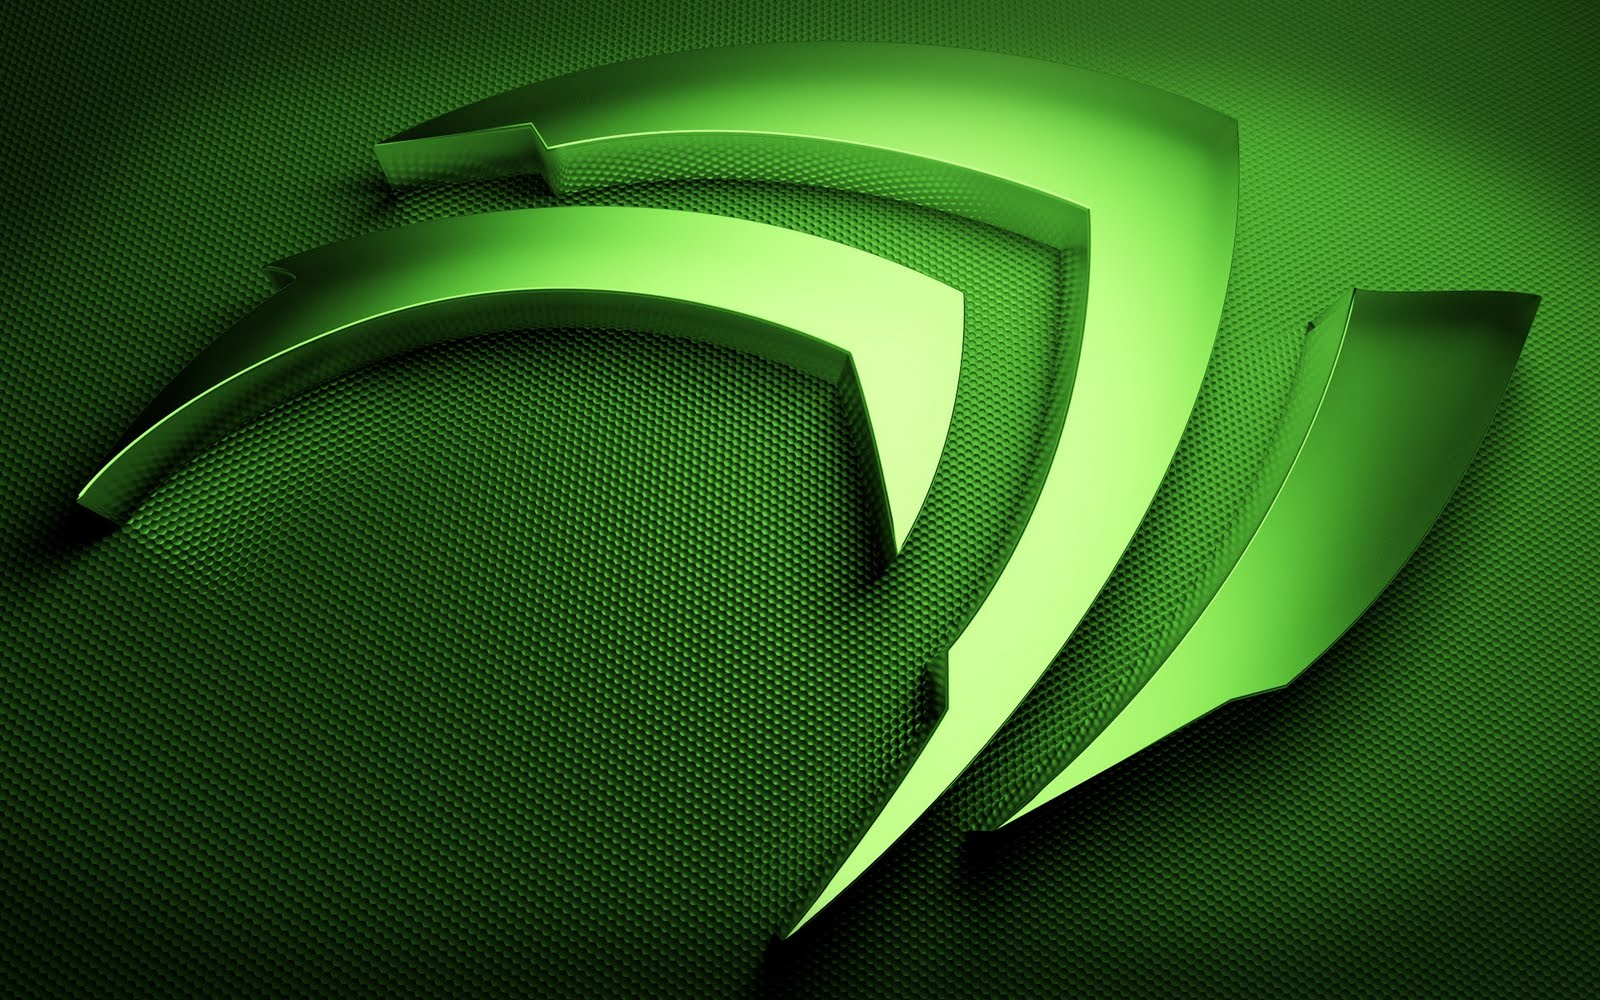 Hd wallpaper green - Nvidia Logo Full Hd Black And Green Wallpapers Download